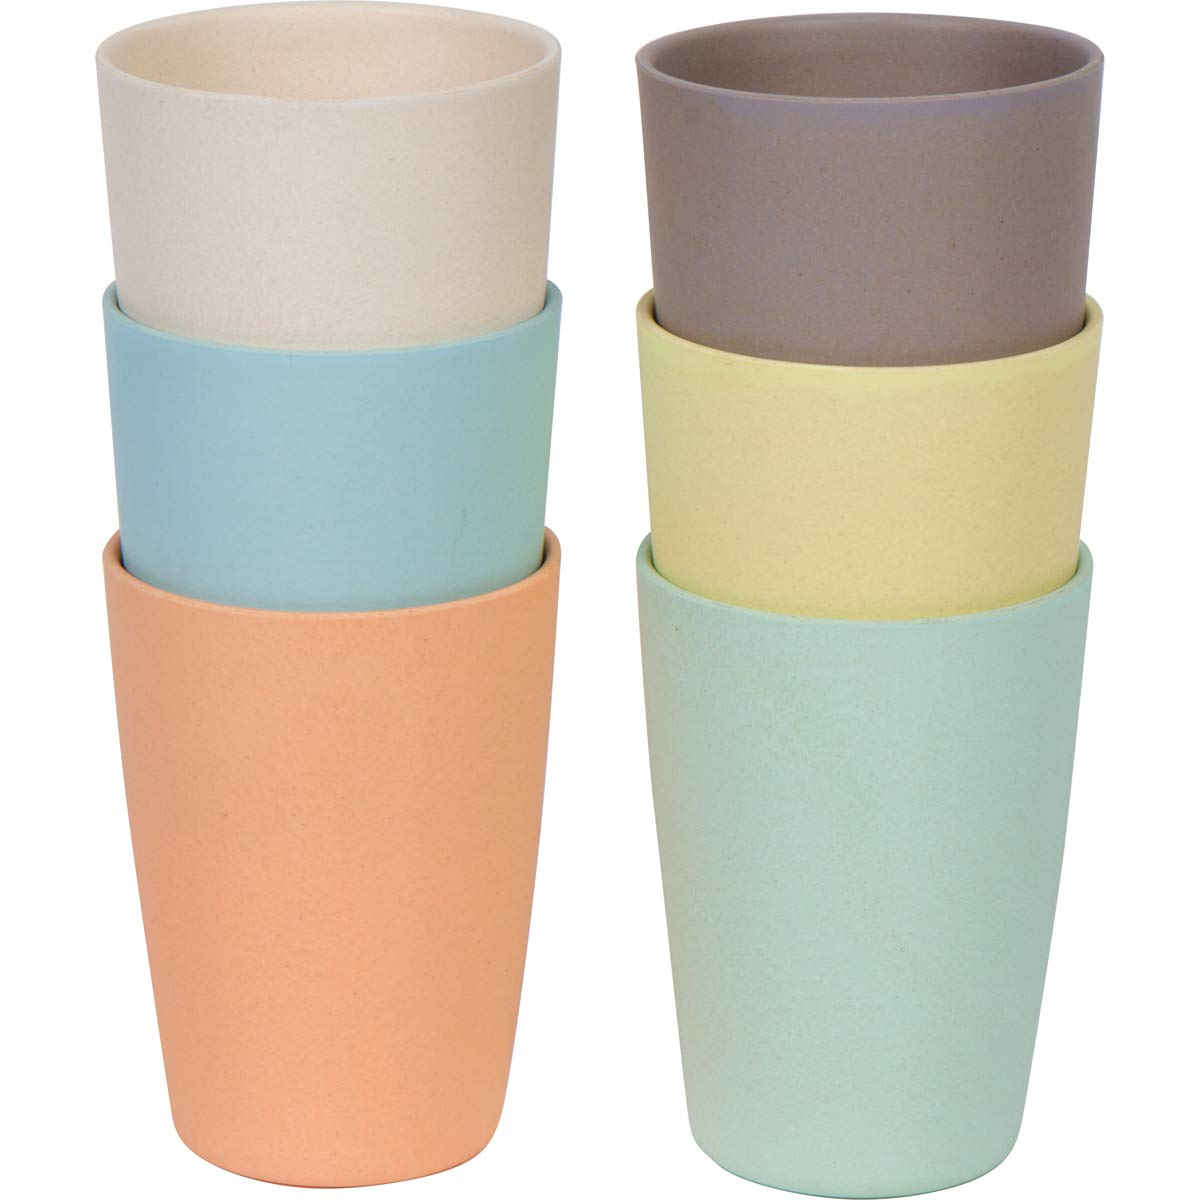 Miracle Bean X Kids Bamboo Fibre Drinking Cups, (Set of 6) for Milk, Juice, Water, Non Toxic, Biodegradable, Eco Friendly 8oz by Miracle Bean